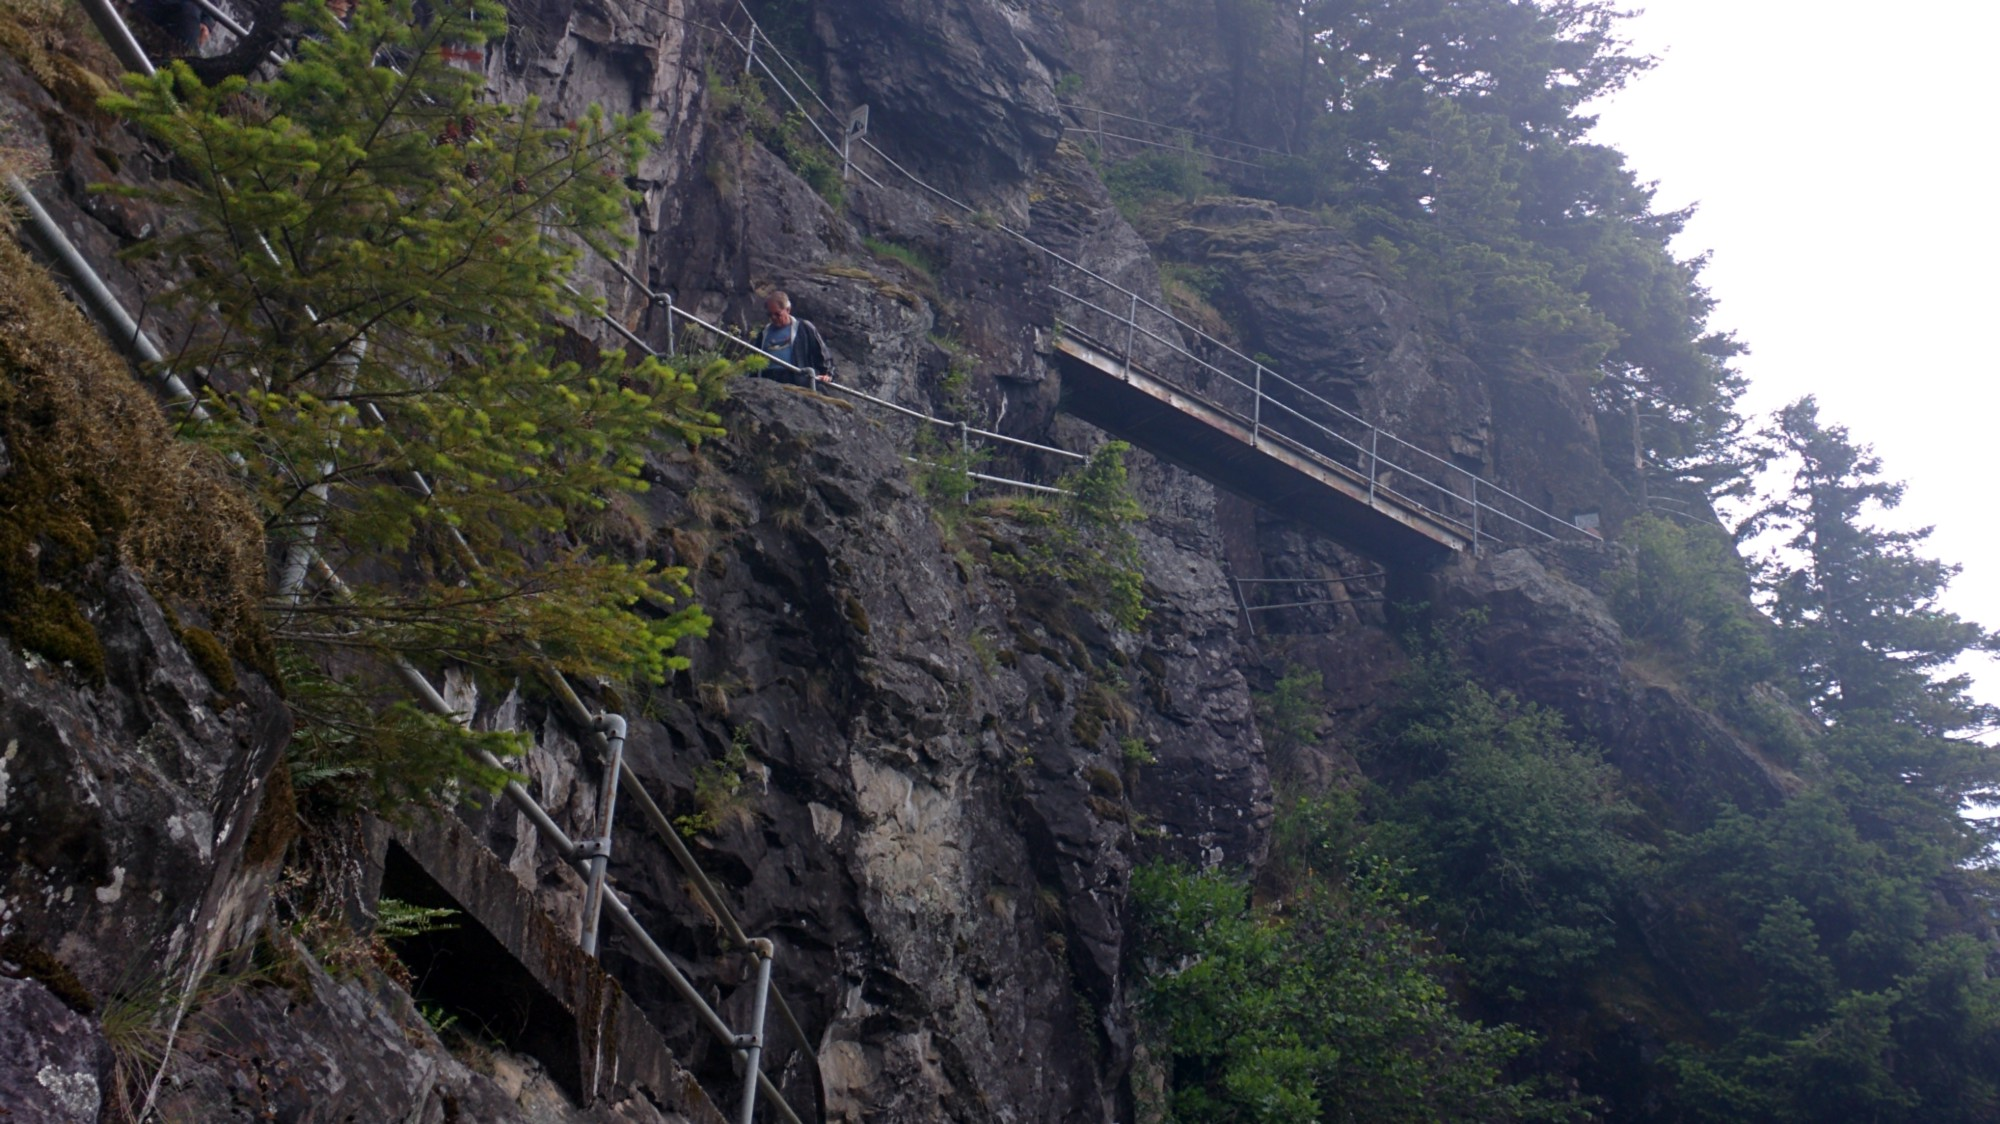 Some of the switchbacks and bridges that make up Beacon Rock Trail